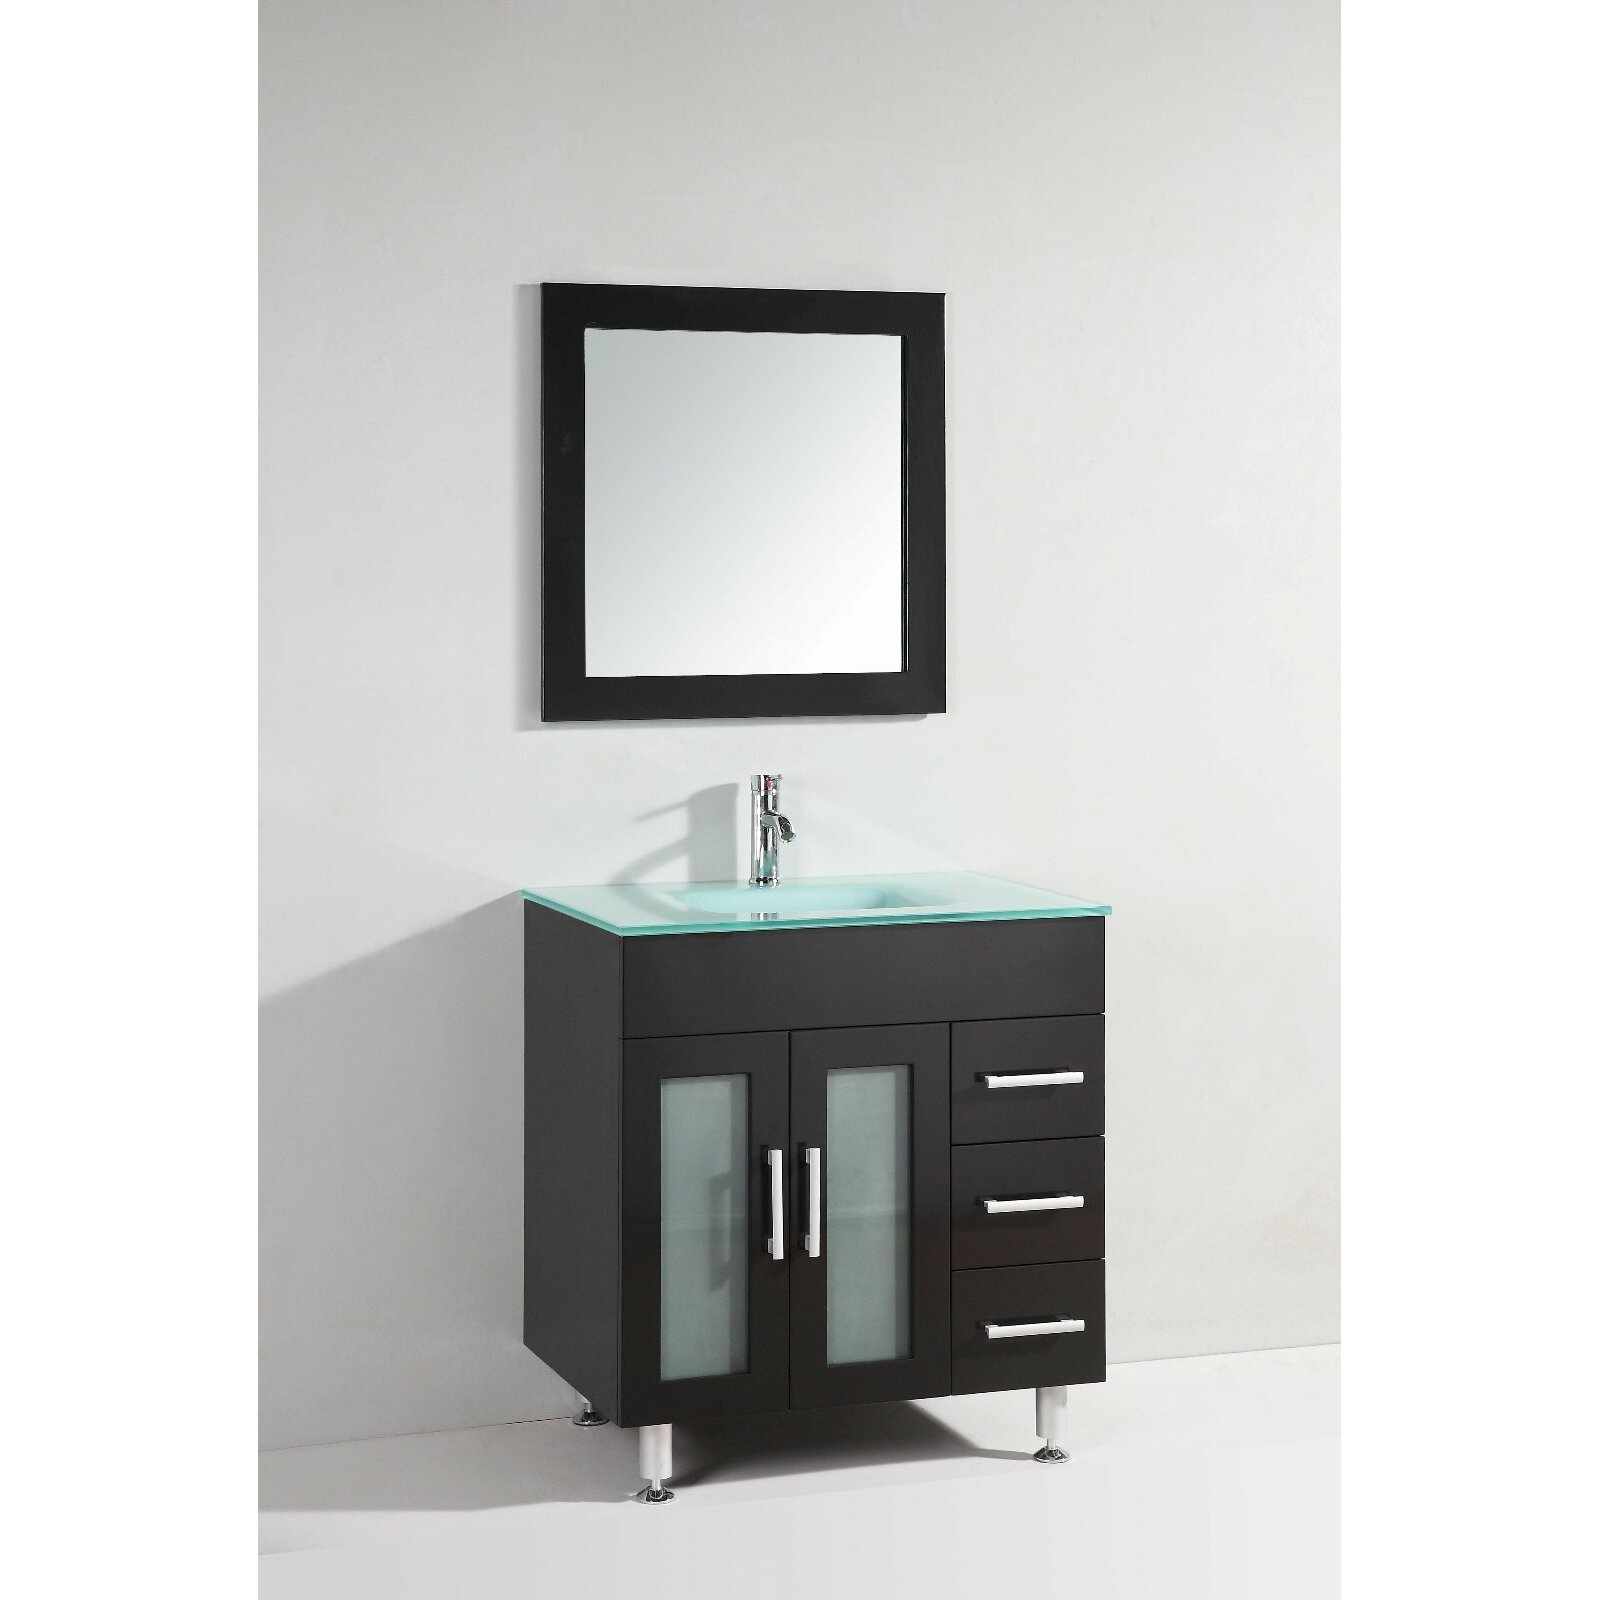 Legion furniture 32 single bathroom vanity set with - Wayfair furniture bathroom vanities ...